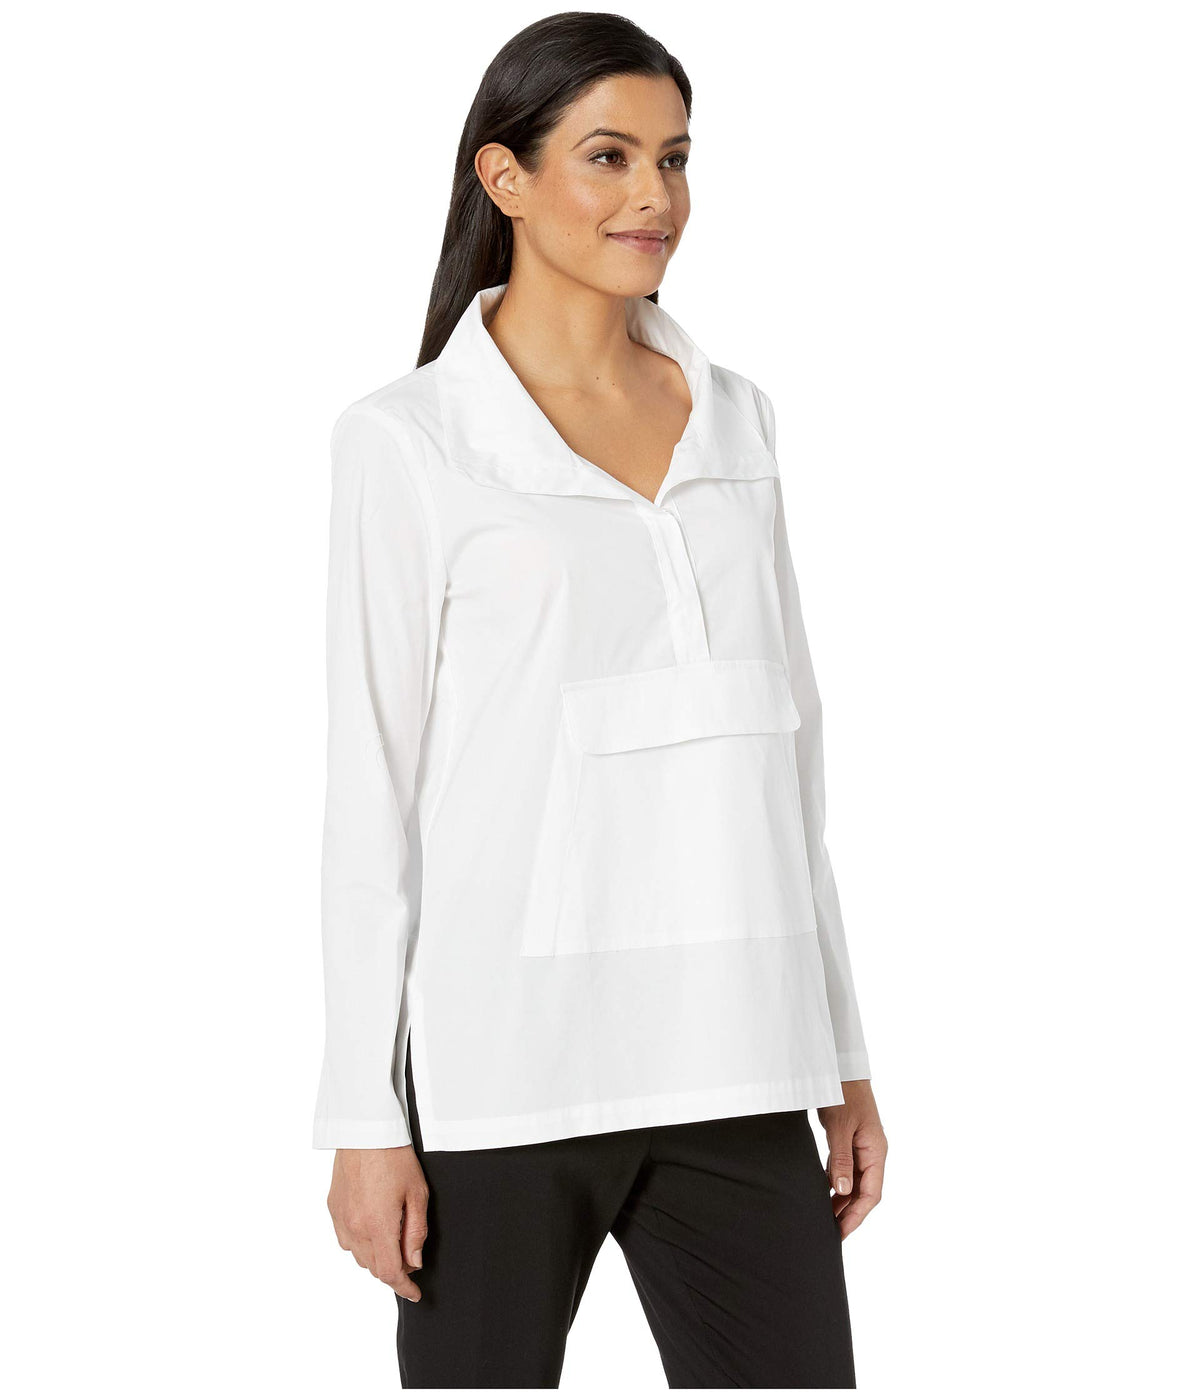 Pull-On Shirt with Kangaroo Pocket and Snap Detail